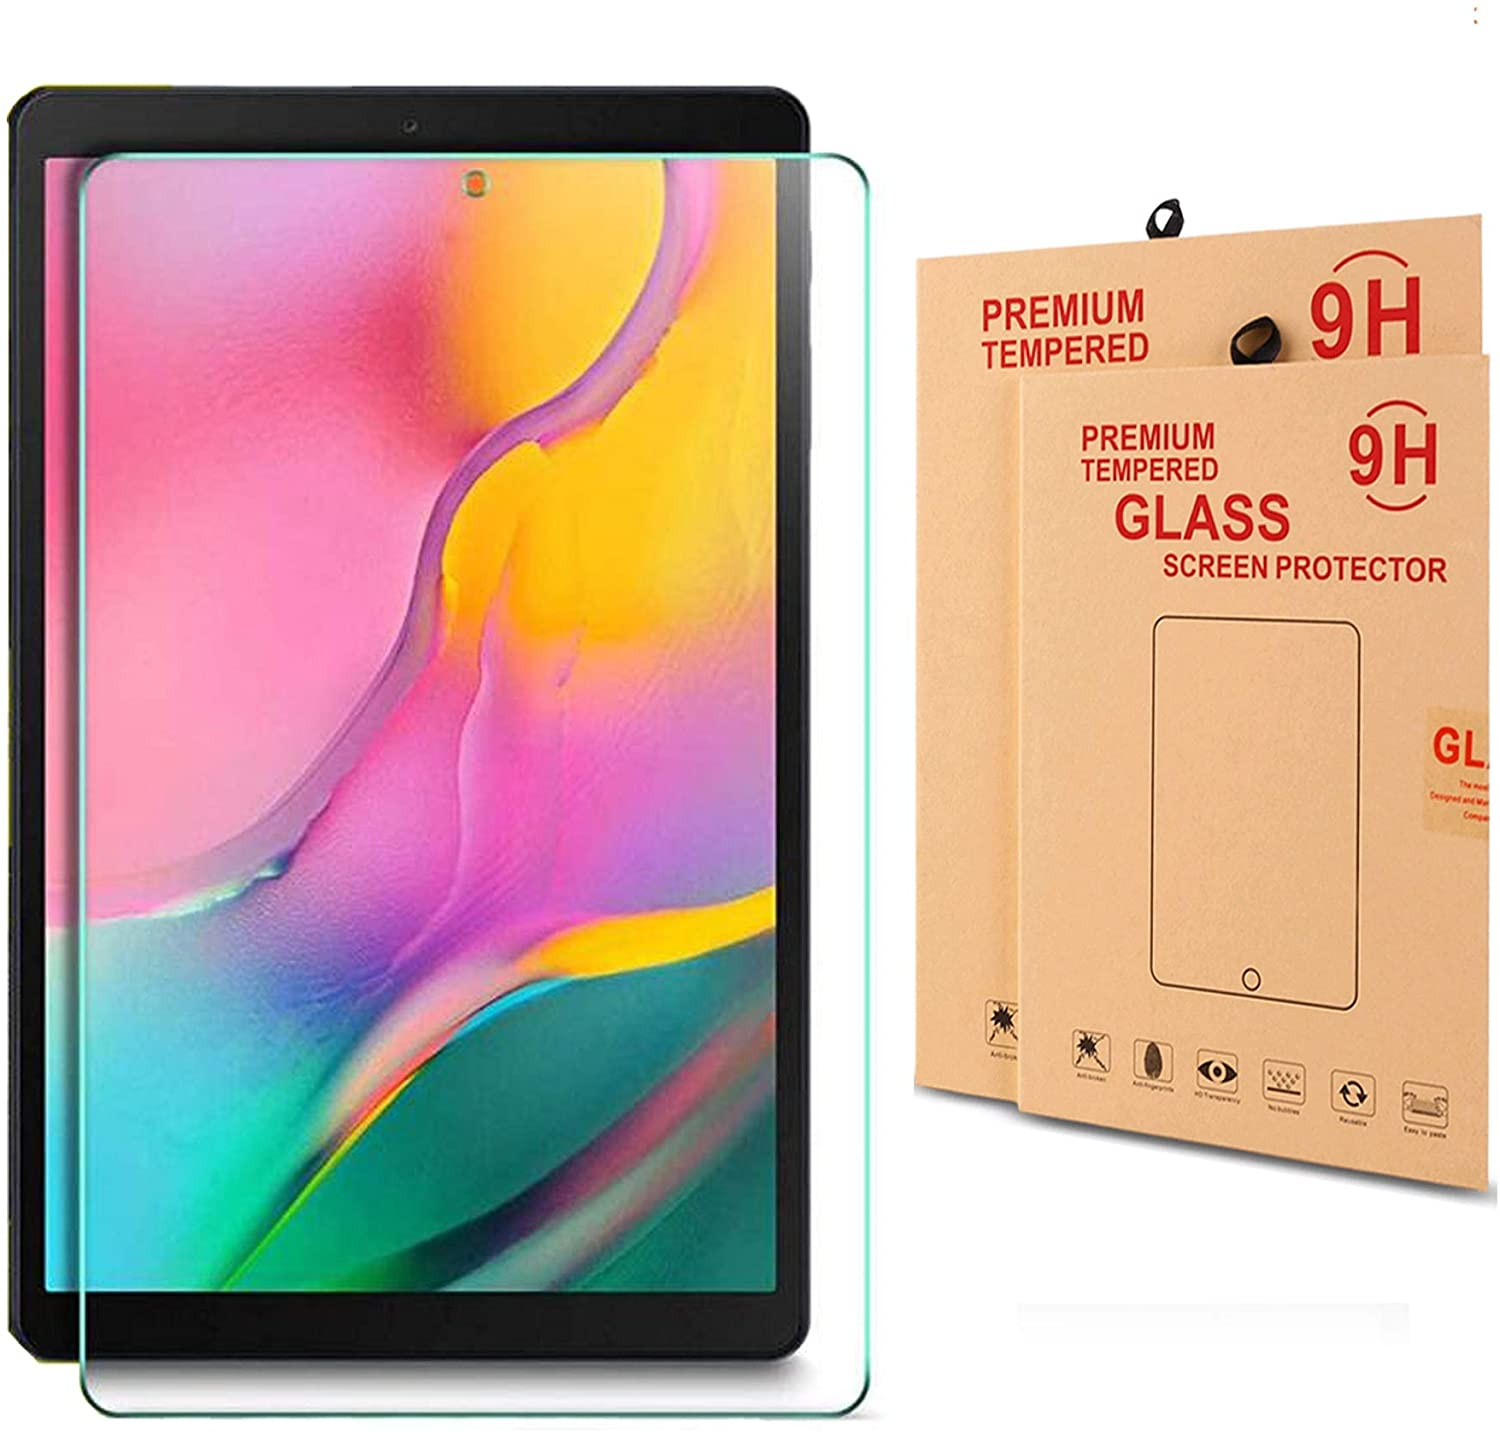 Samsung Galaxy Tab A 10.1 (2019) SM-T515/T510 Screen Protector, Nacodex 9H Tempered Glass, Premium Tempered Glass Screen Protector